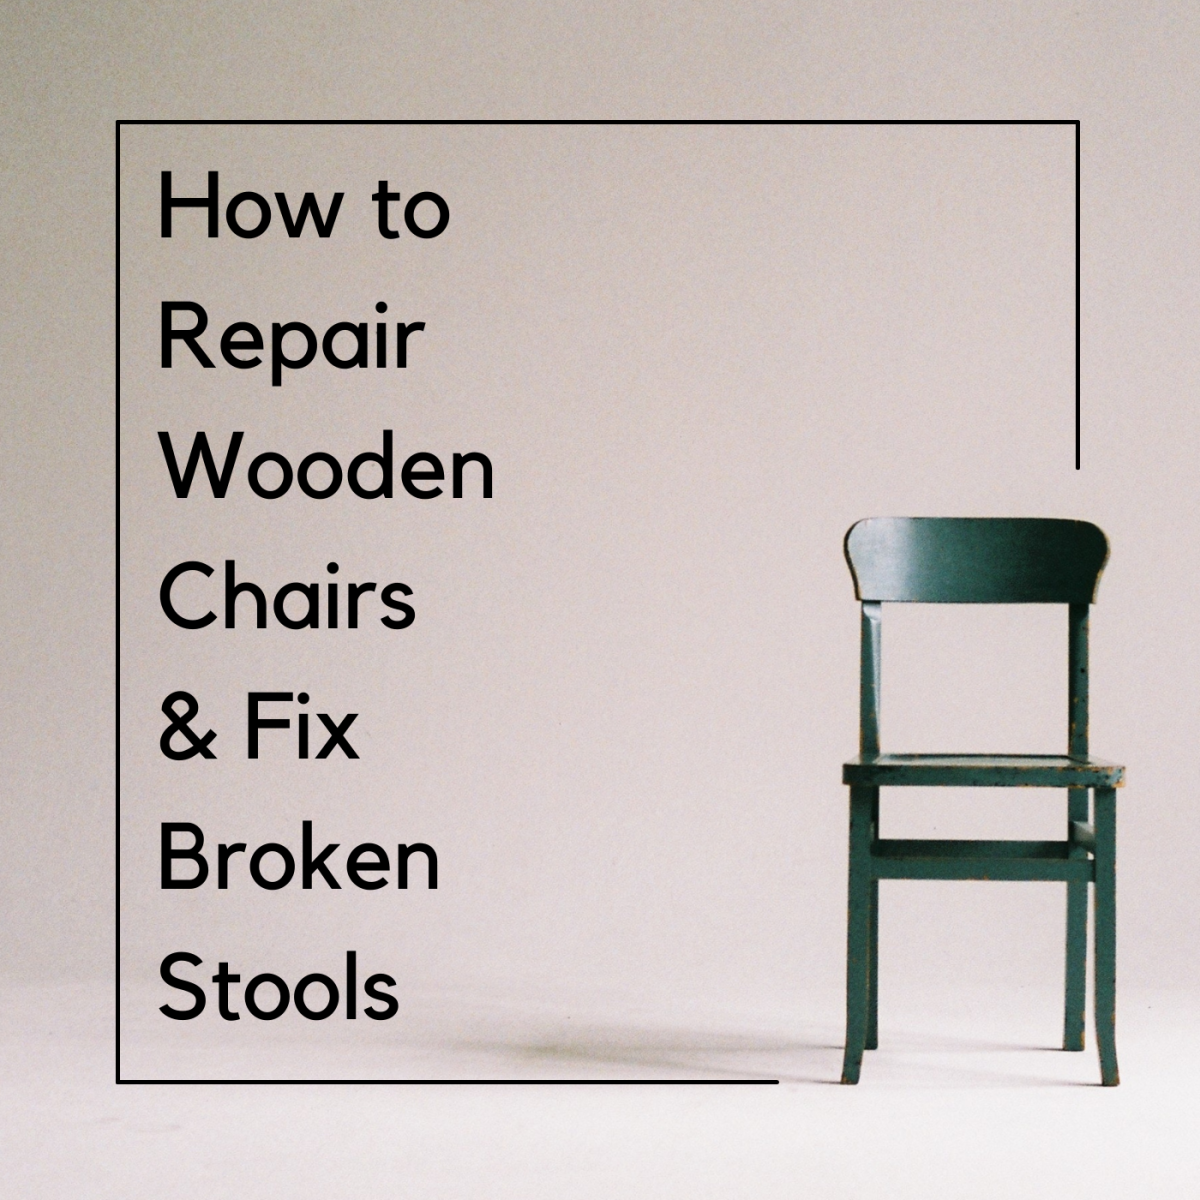 Learn how to repair standard wooden chairs and stools.